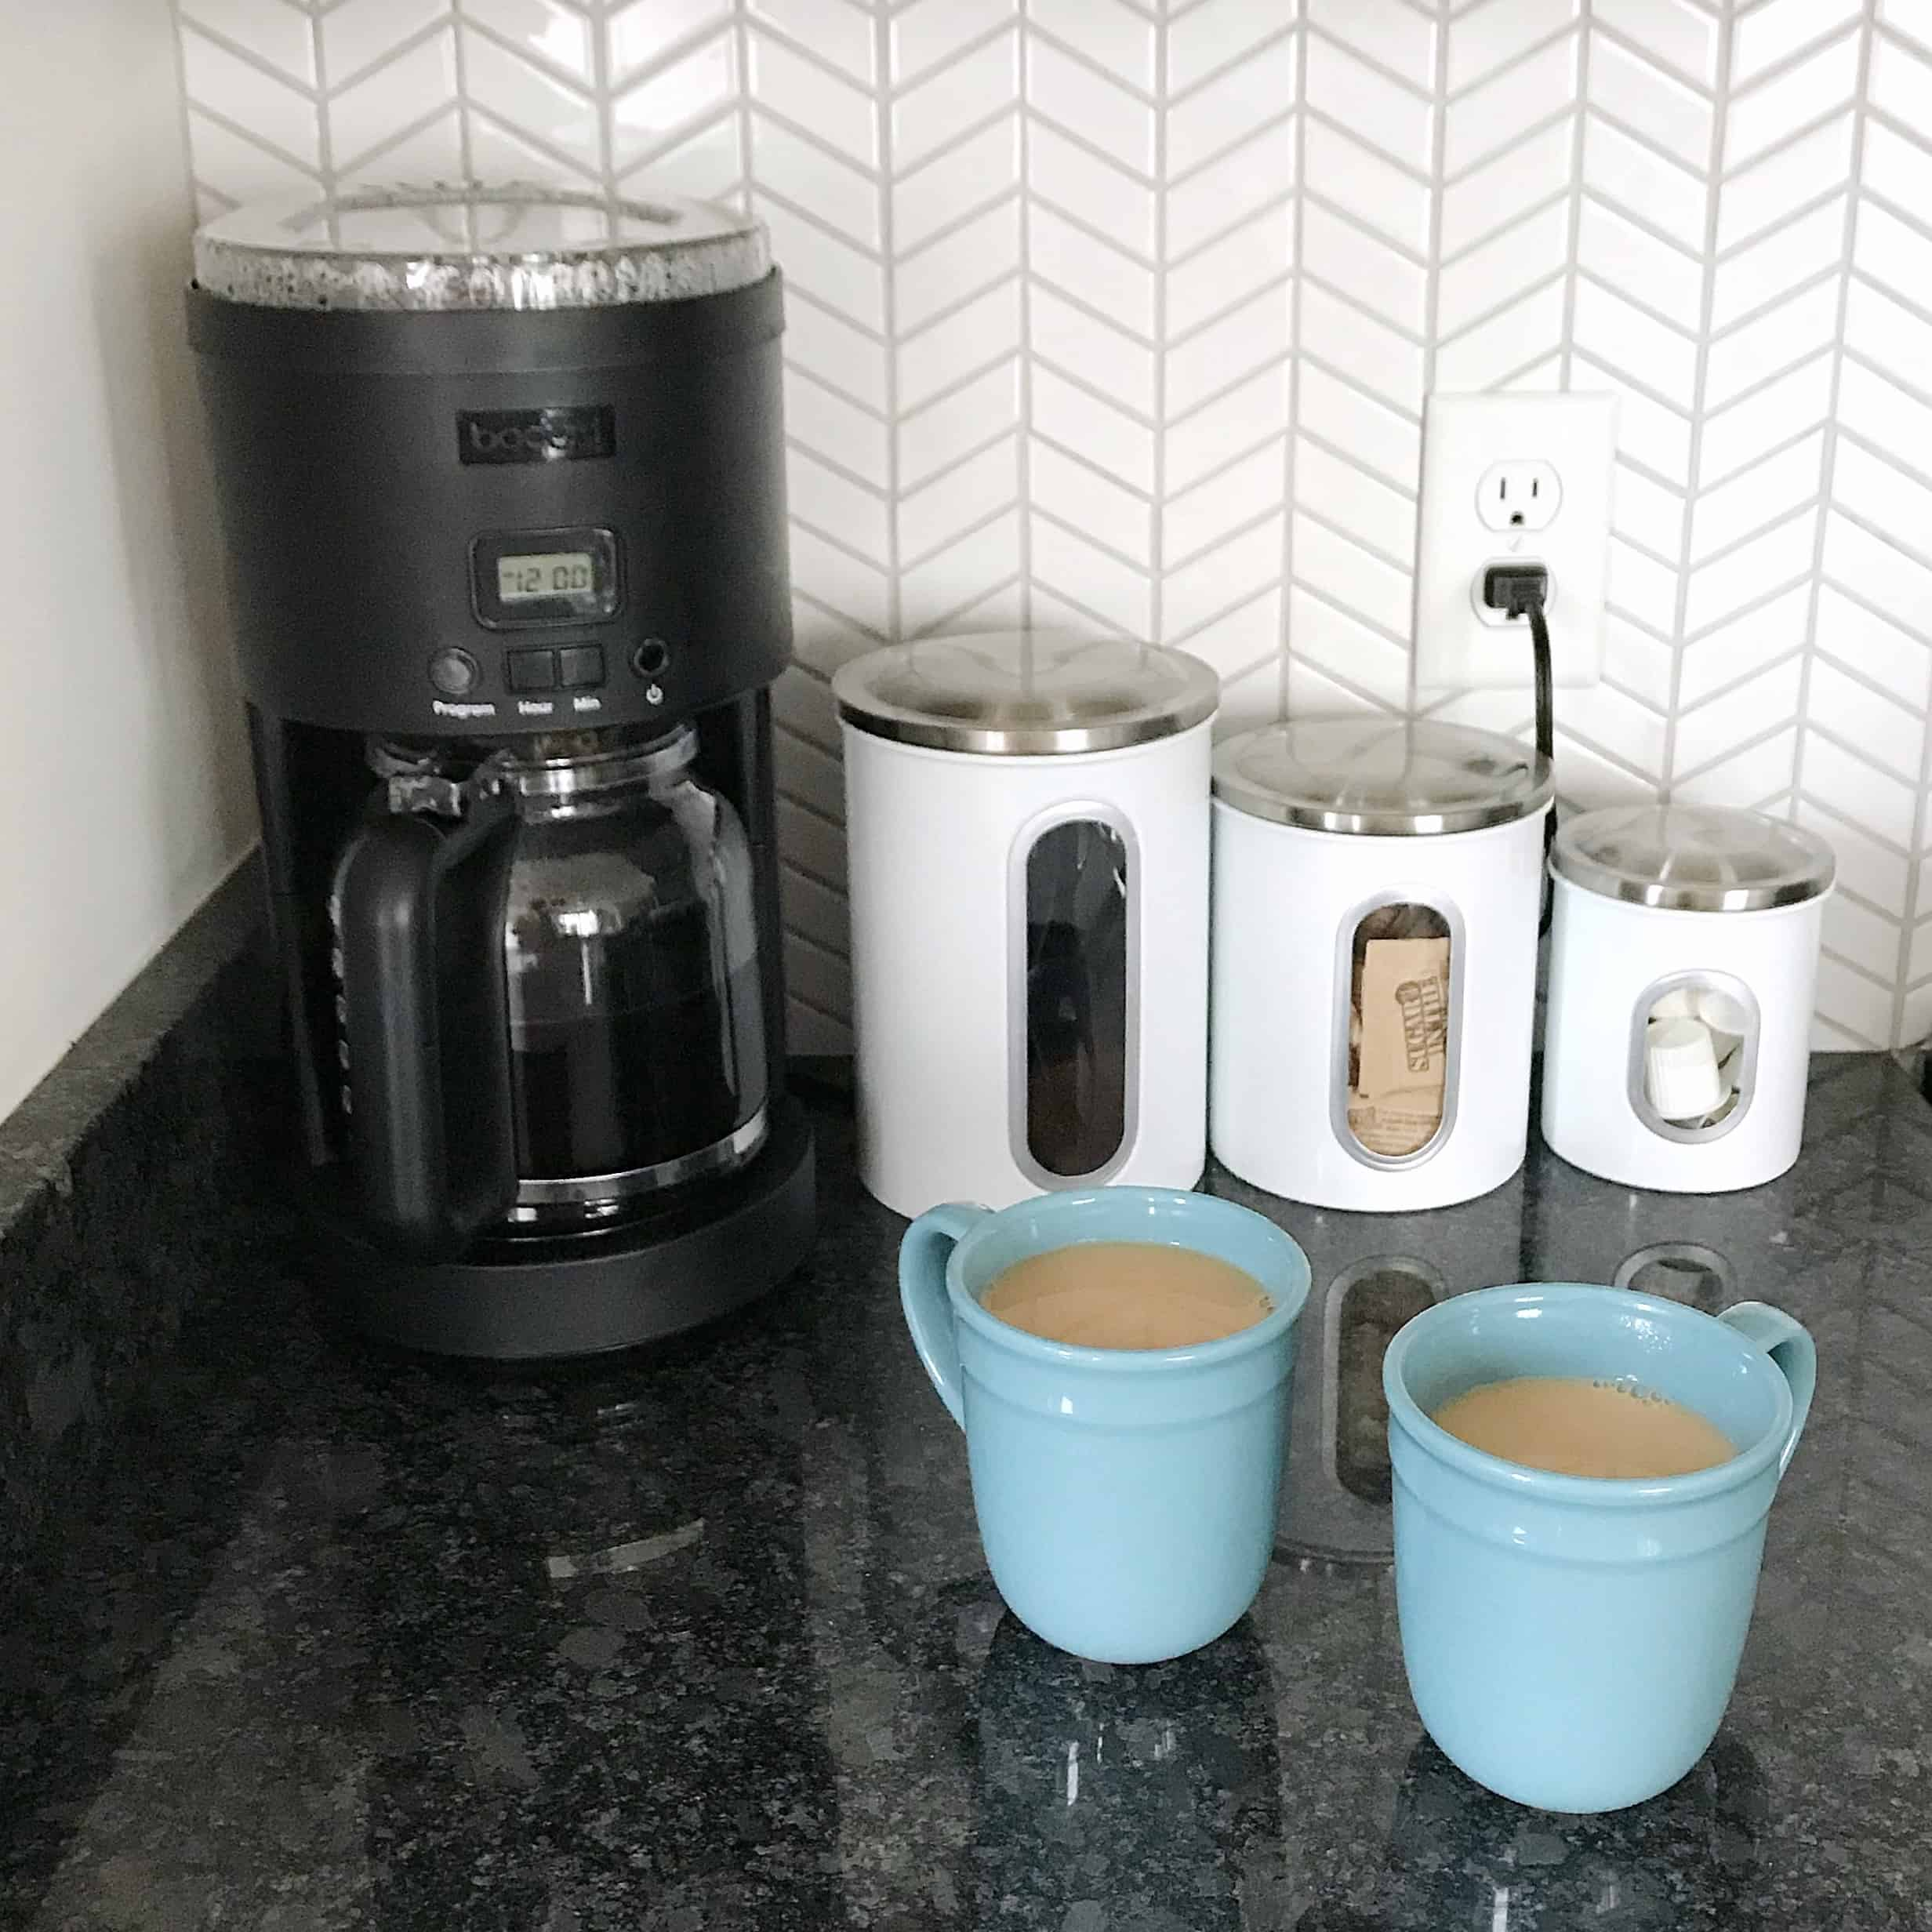 Coffee maker and cups in a monochrome kitchen